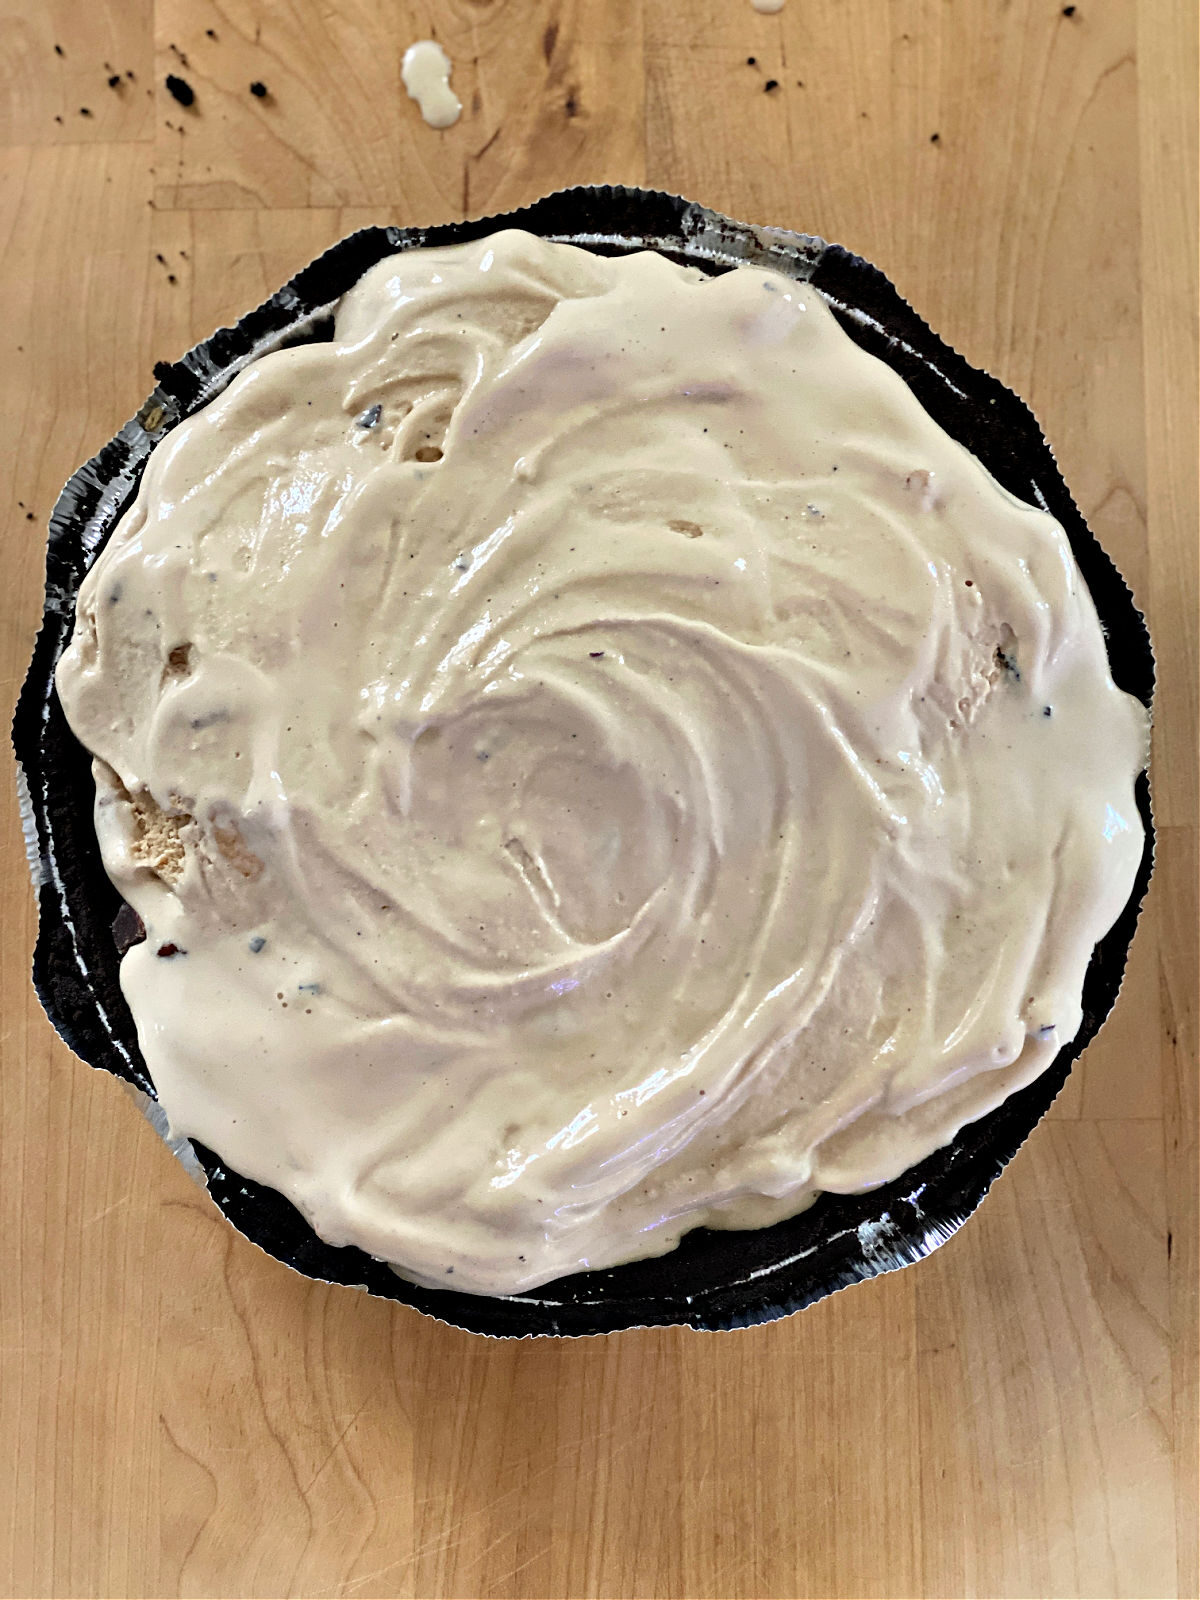 Chocolate pie crust with layer of coffee ice cream.